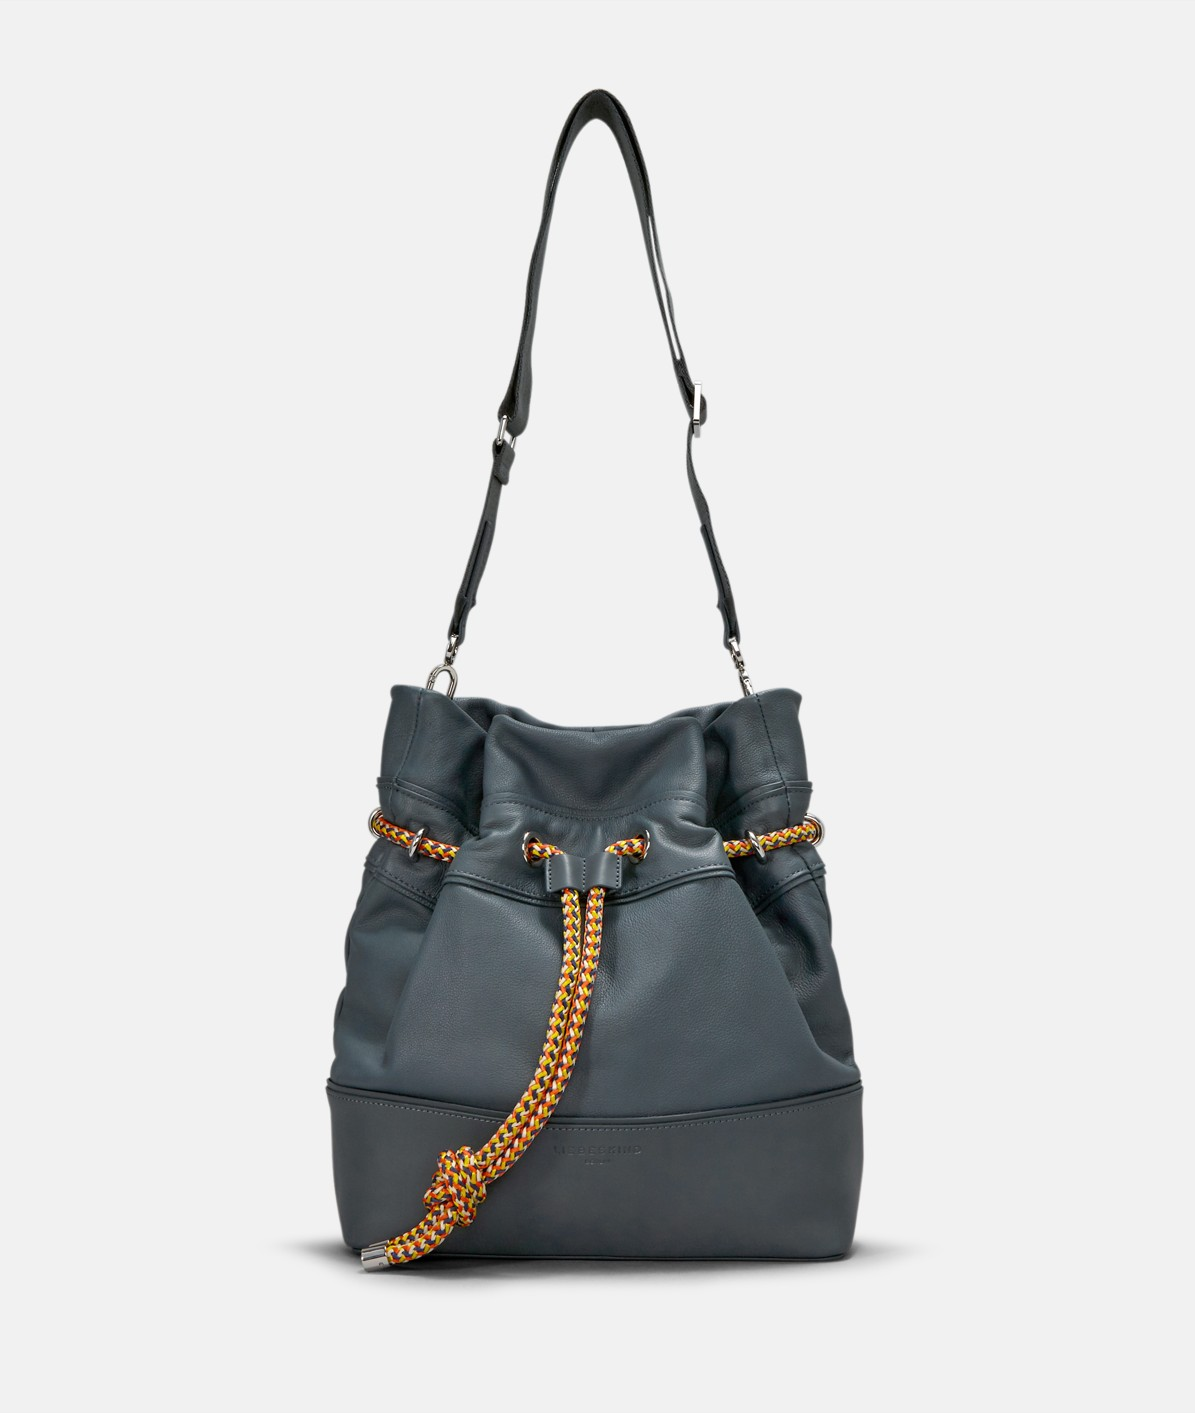 Hobo bag with a nylon cord drawstring from liebeskind